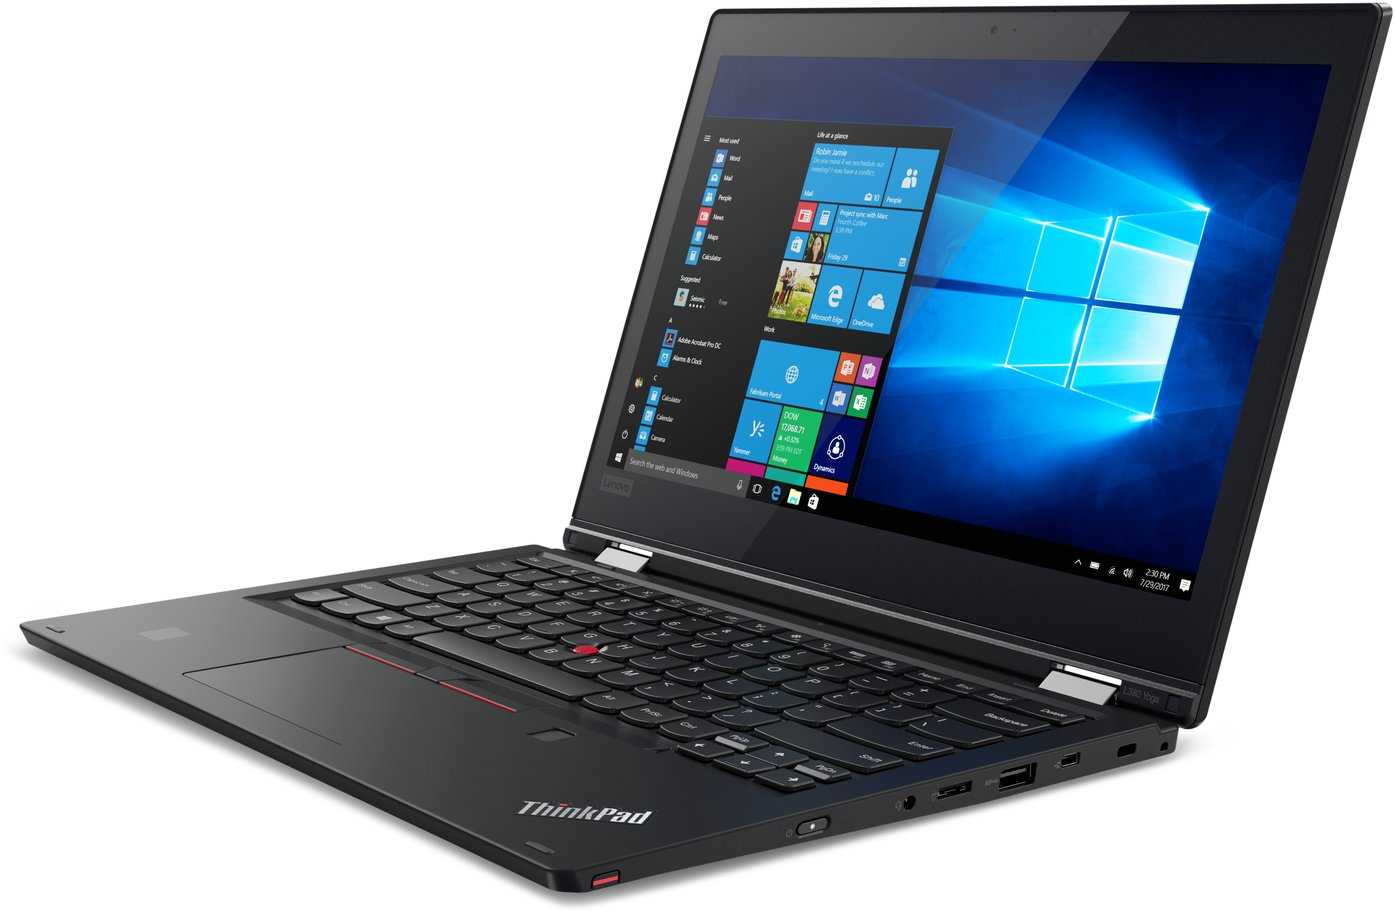 Lenovo ThinkPad Yoga L380